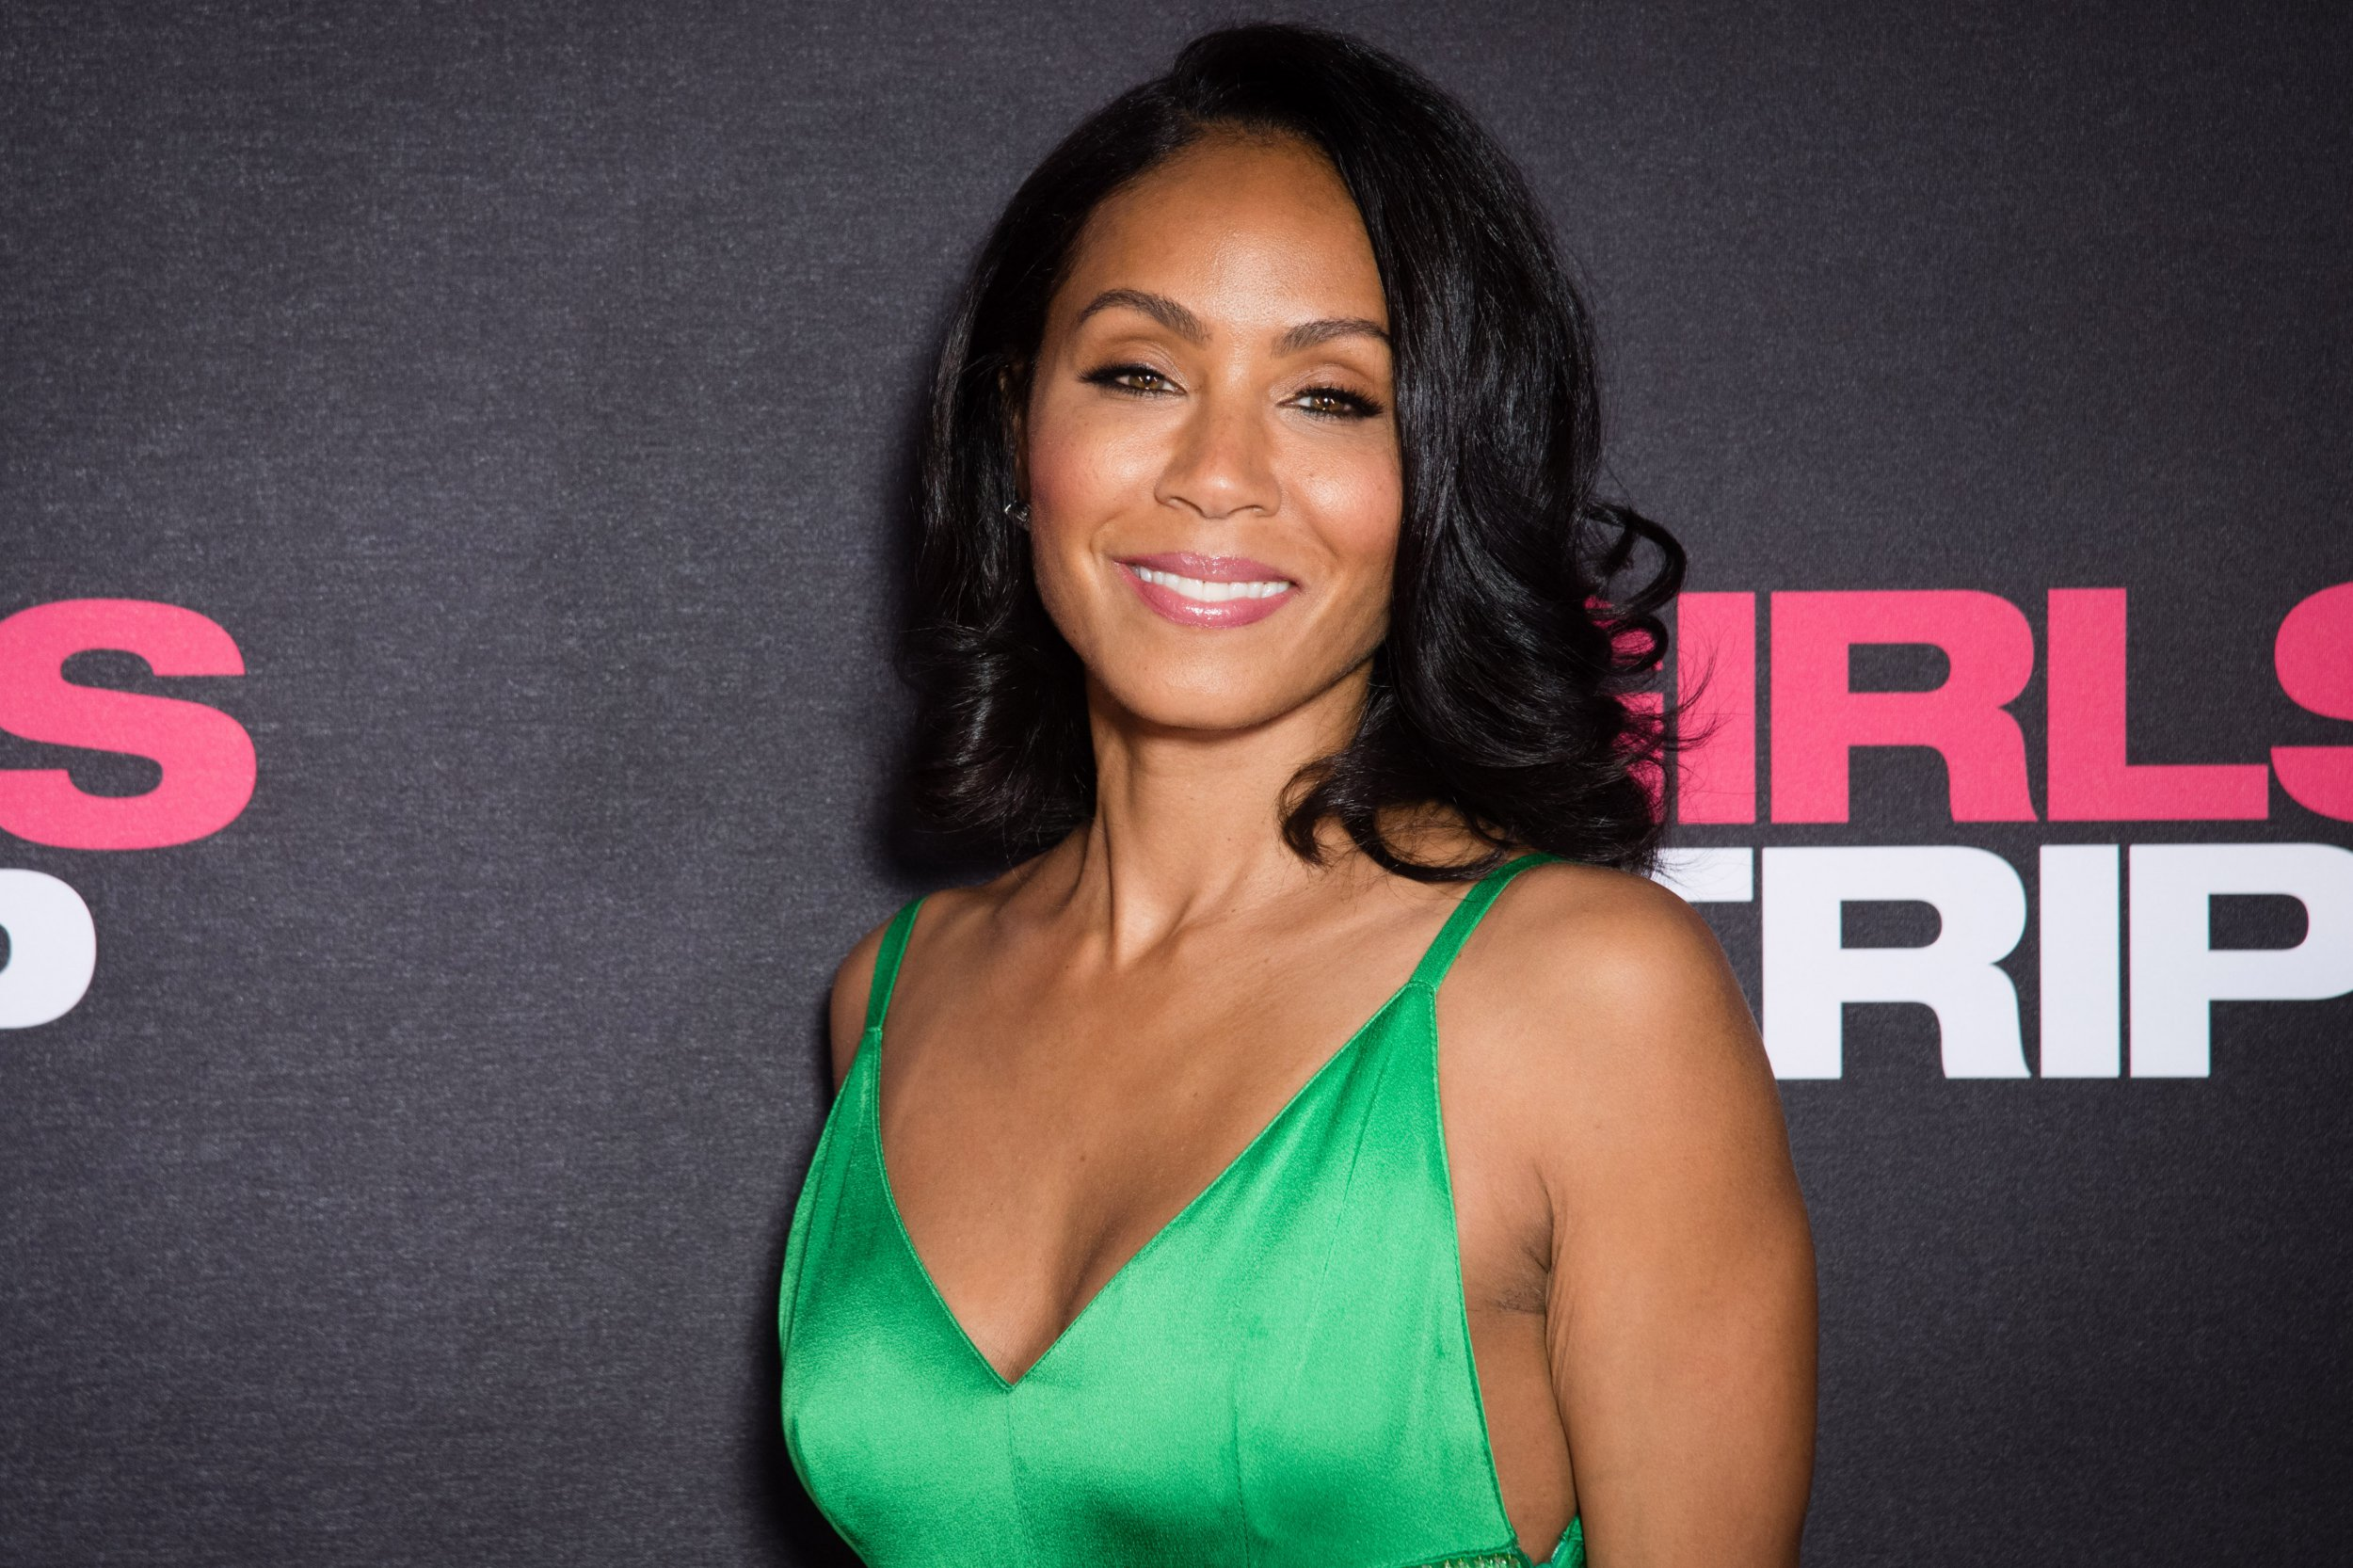 Jada Pinkett Smith claims her vagina is 'like a 16-year-old's': 'It's a little beautiful peach'